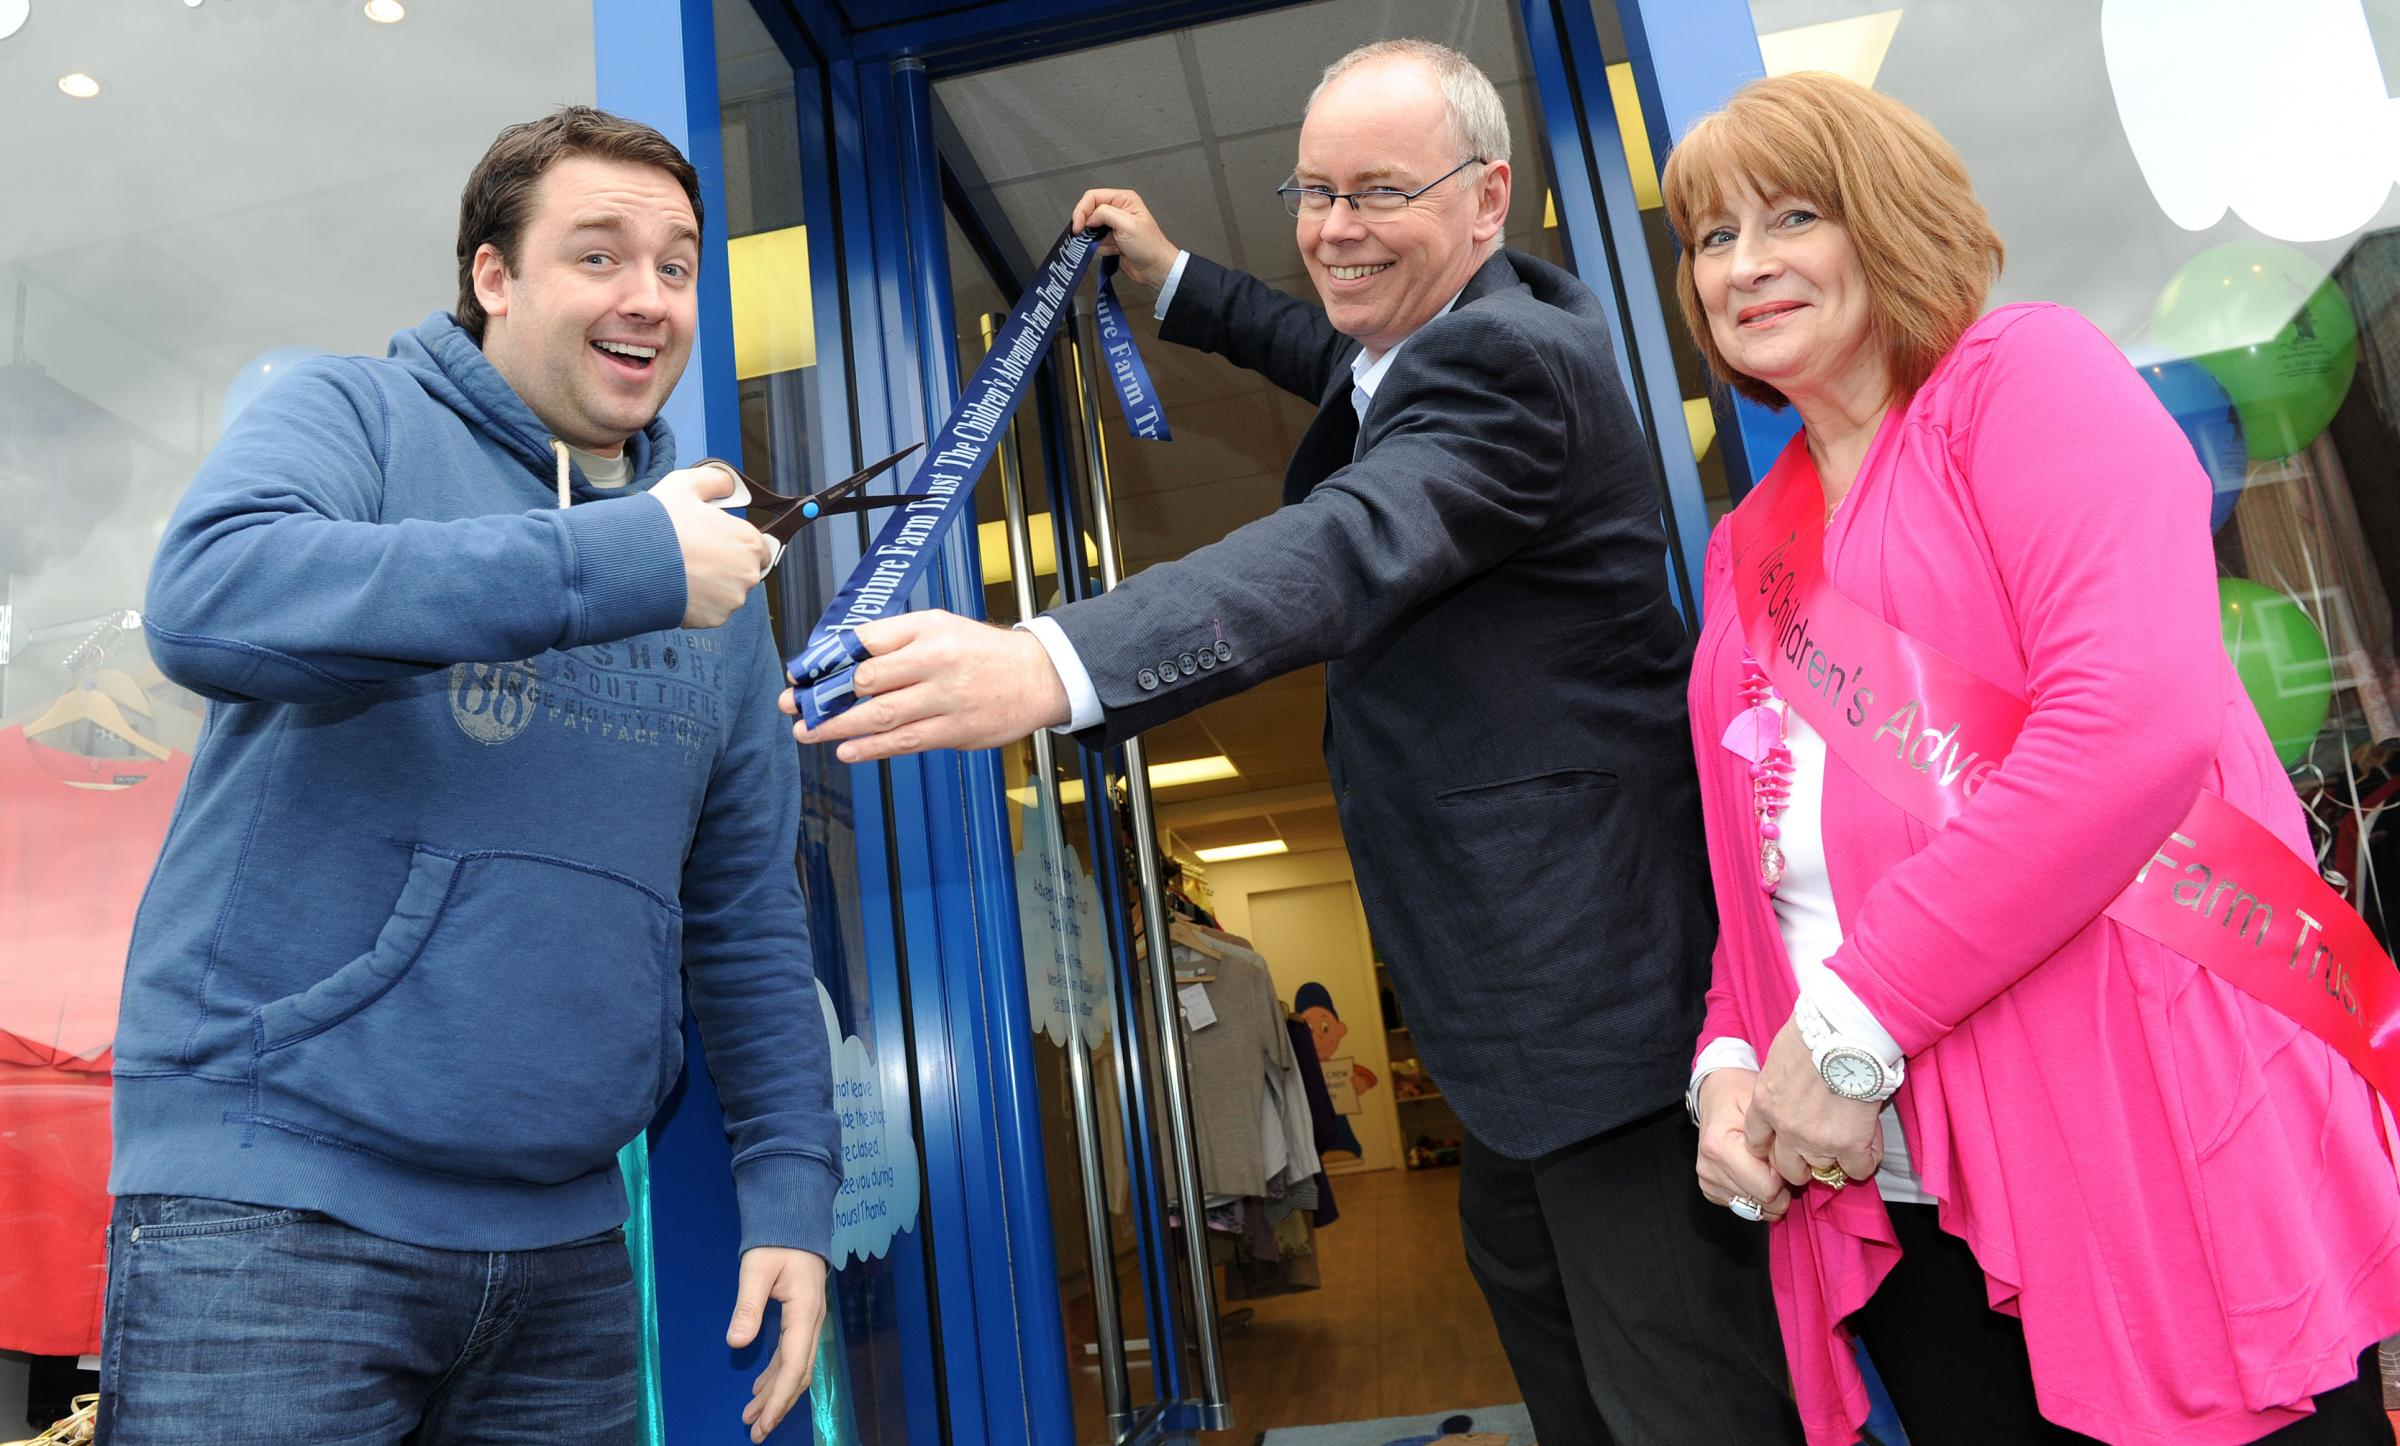 Jason Manford opens the refurbished charity shop in Knutsford. Pictured is Chairman Nick Montague with store manager Sandra Eyes.